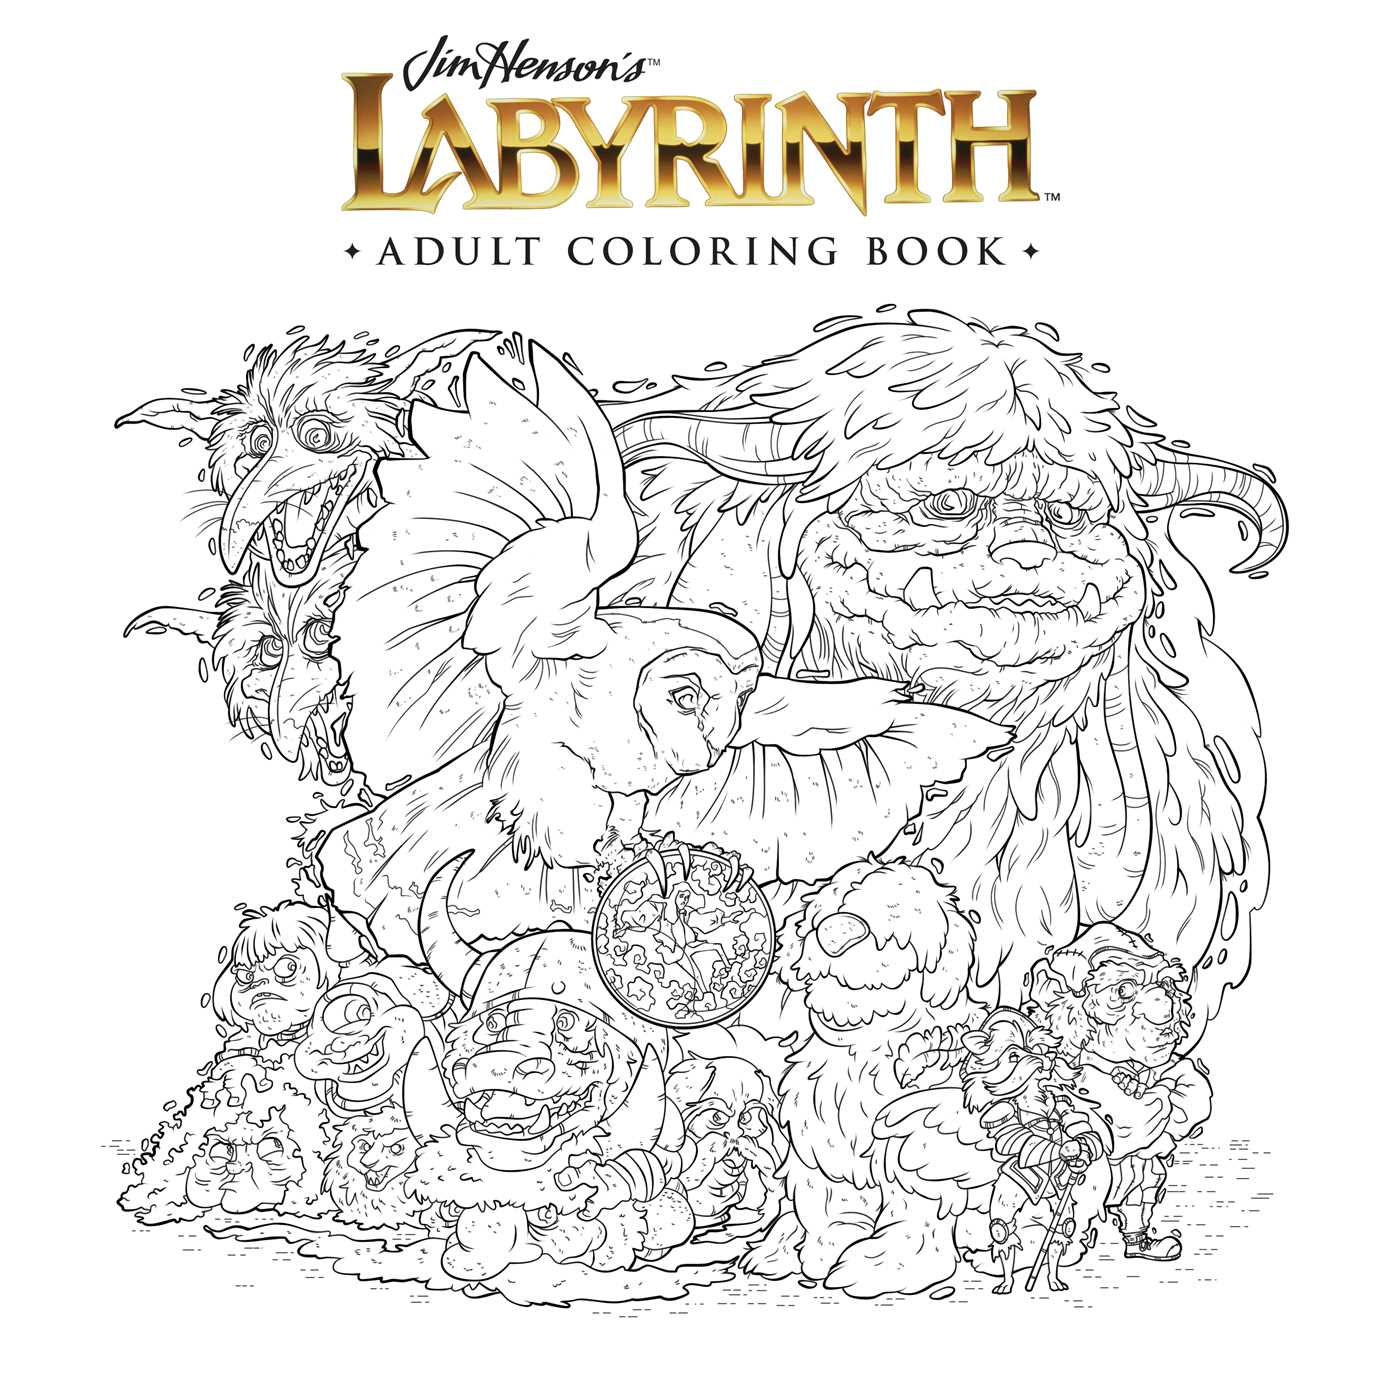 Book Cover Image Jpg Jim Hensons Labyrinth Adult Coloring